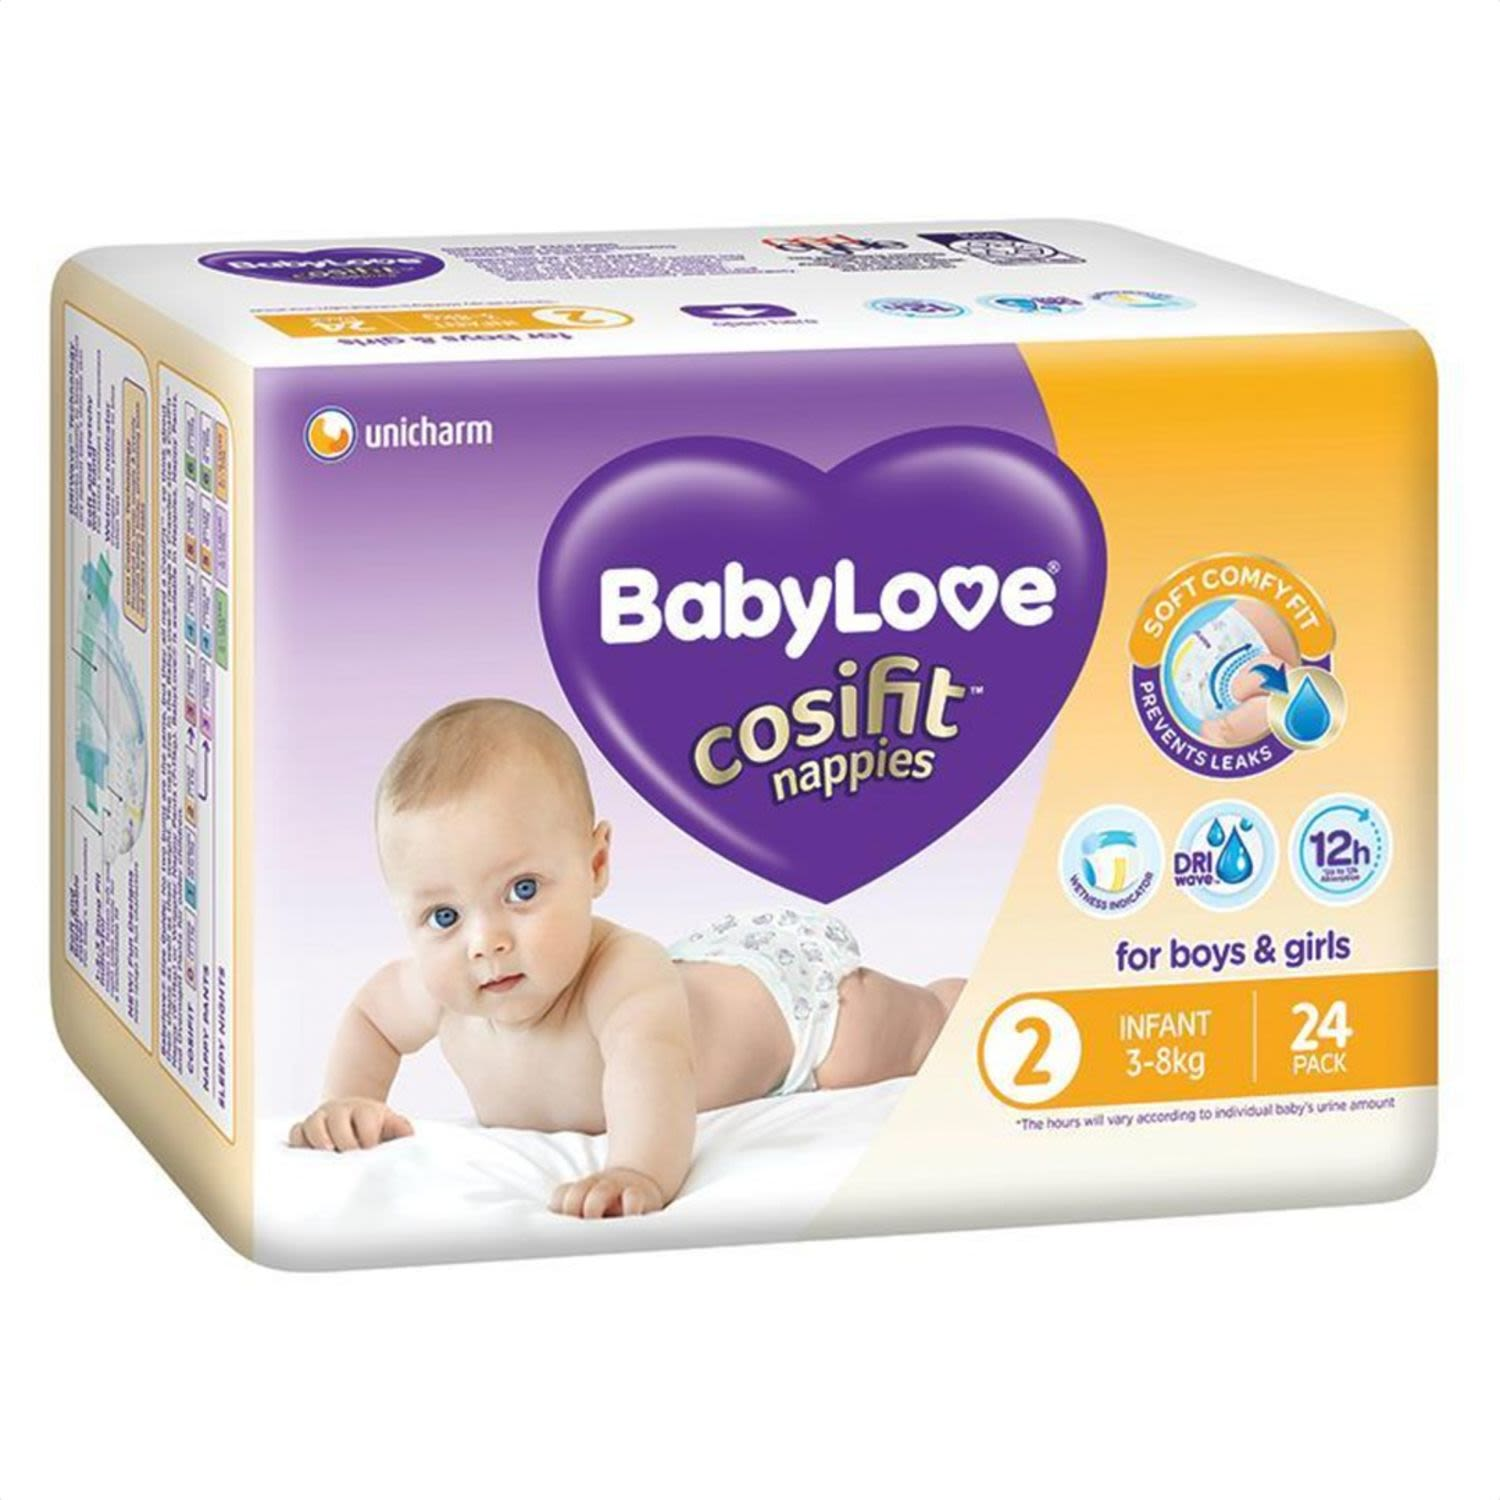 BabyLove Cosifit Nappies Infant, 24 Each